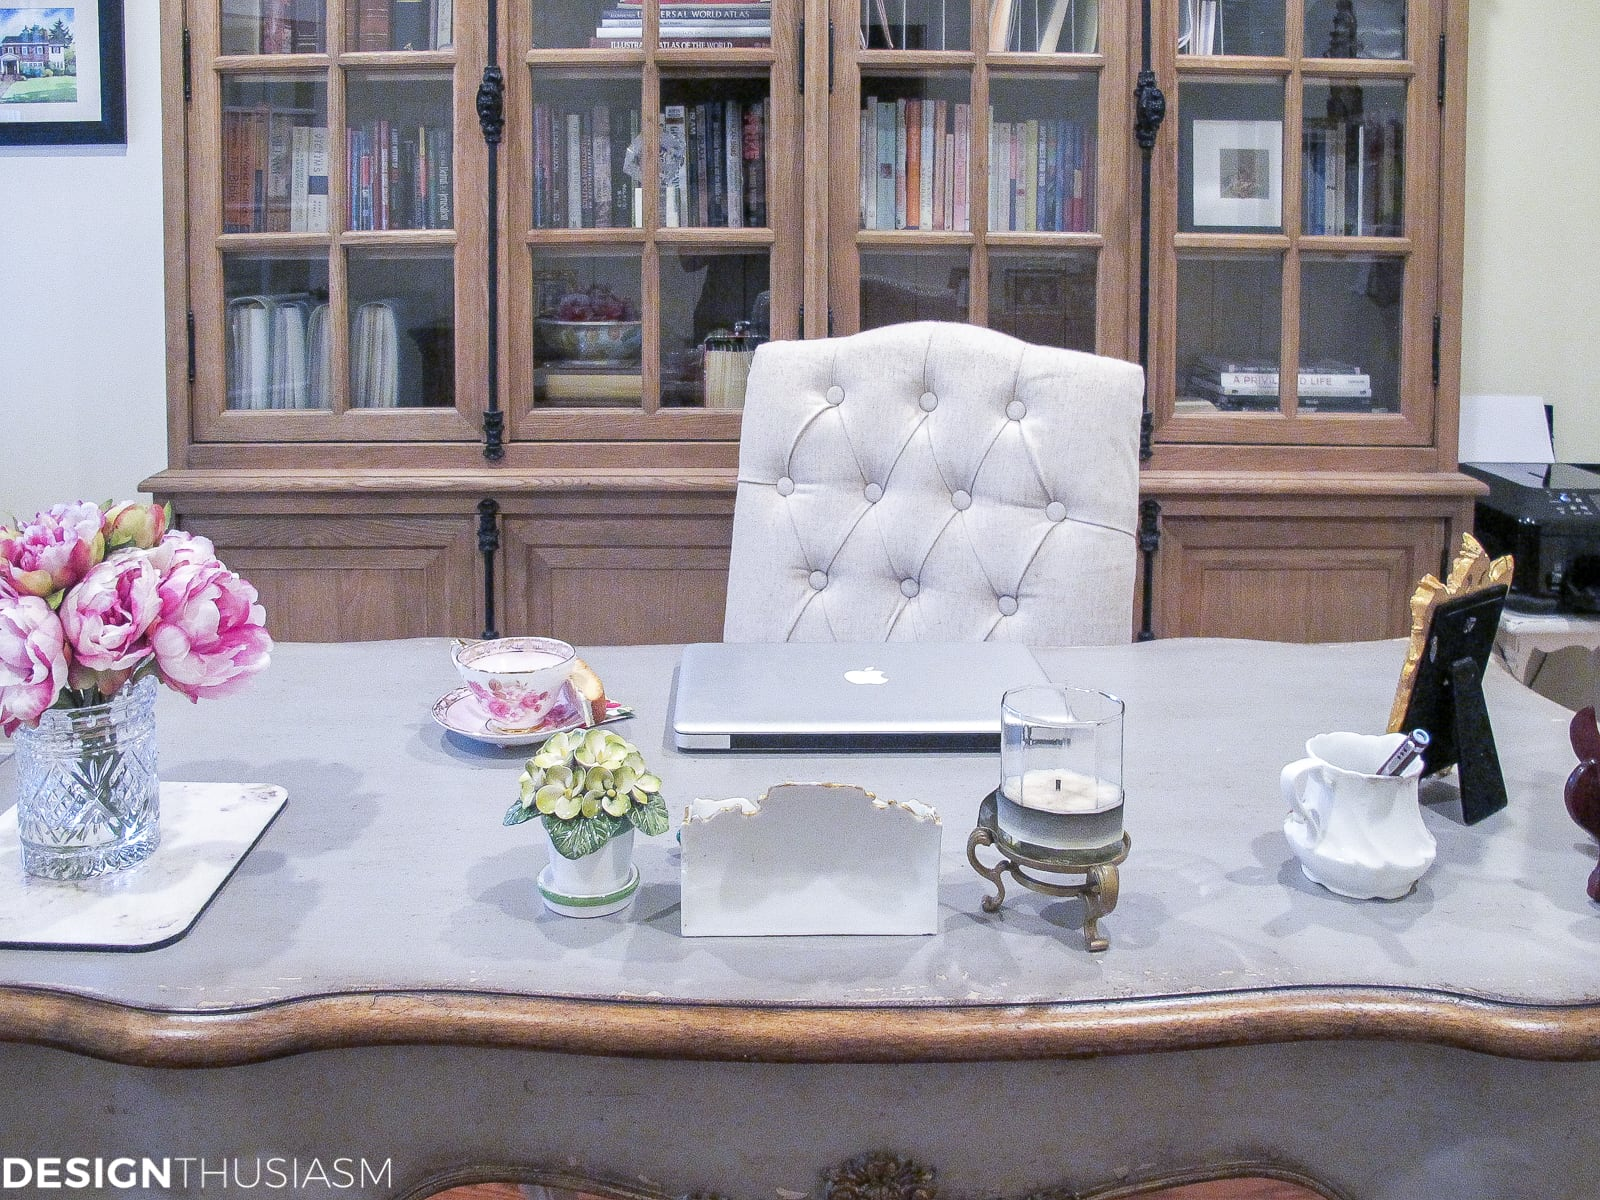 Decorating the Study with French Style Furniture | Designthusiasm.com